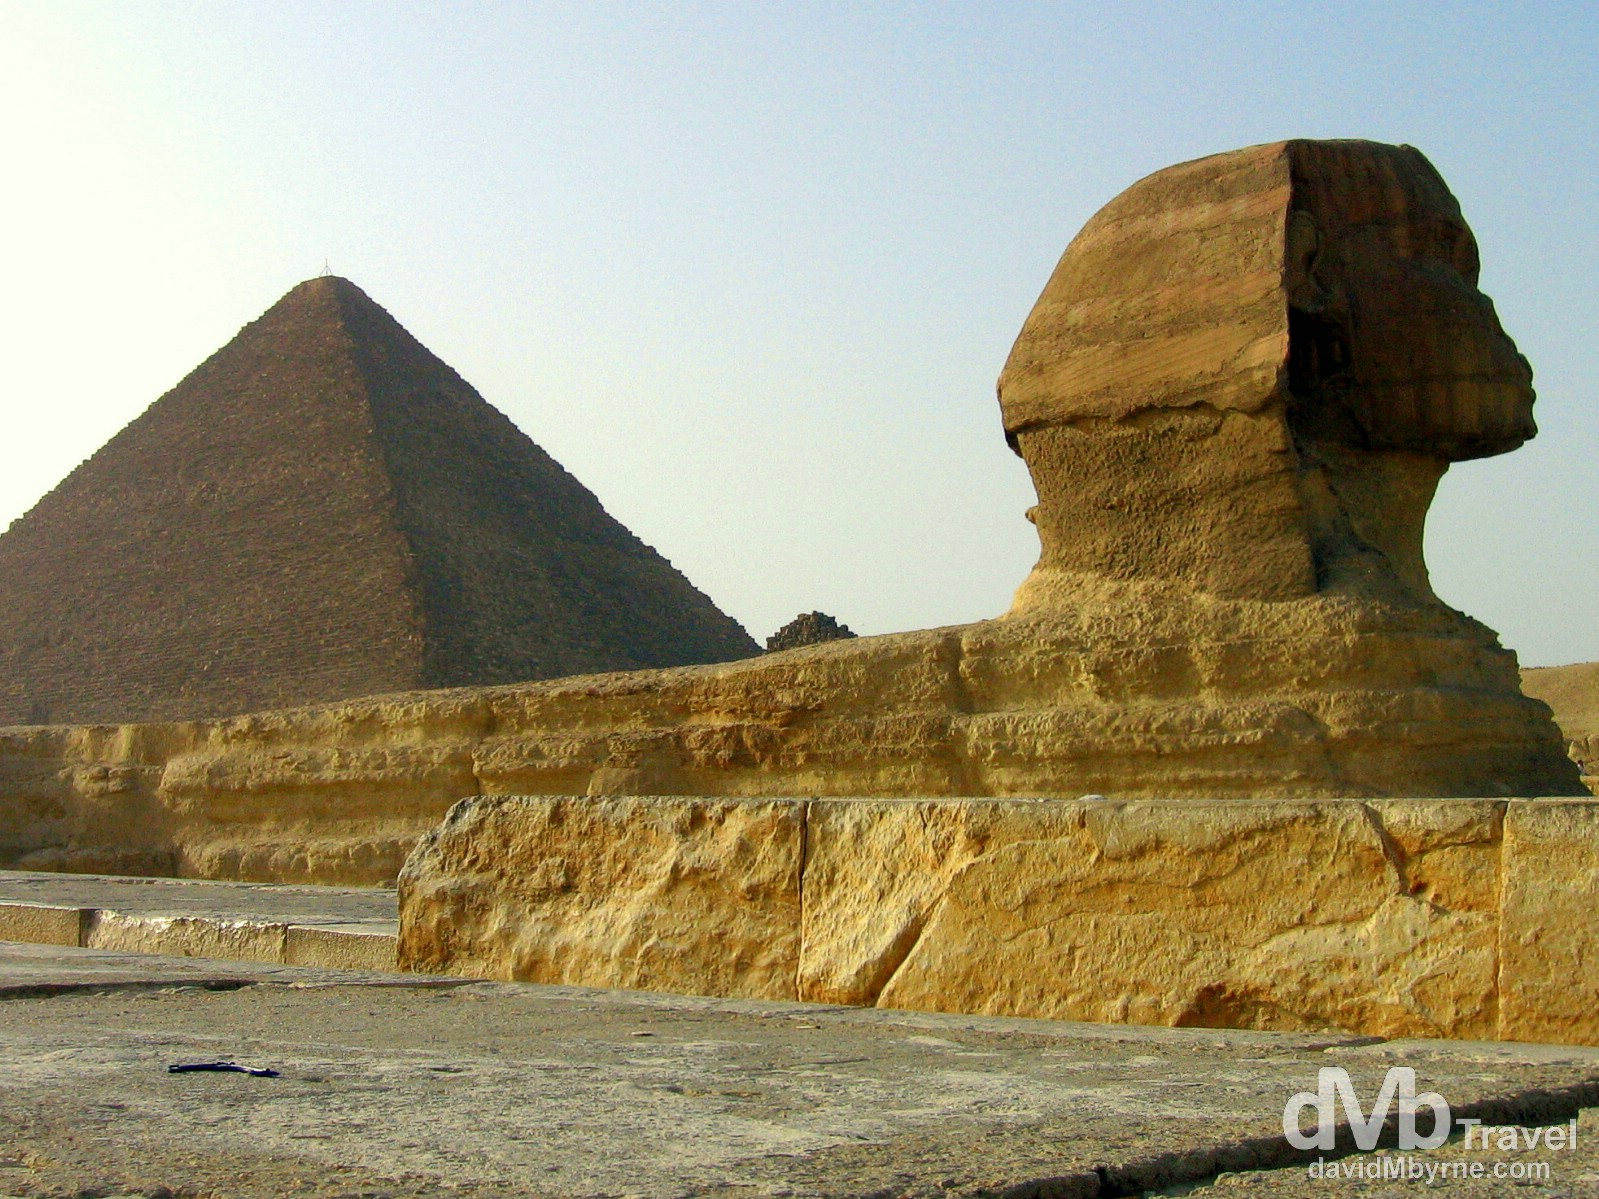 The Sphinx with the Great Pyramid of Khufu on the Giza Plateau, Giza, Egypt. April 13, 2008.